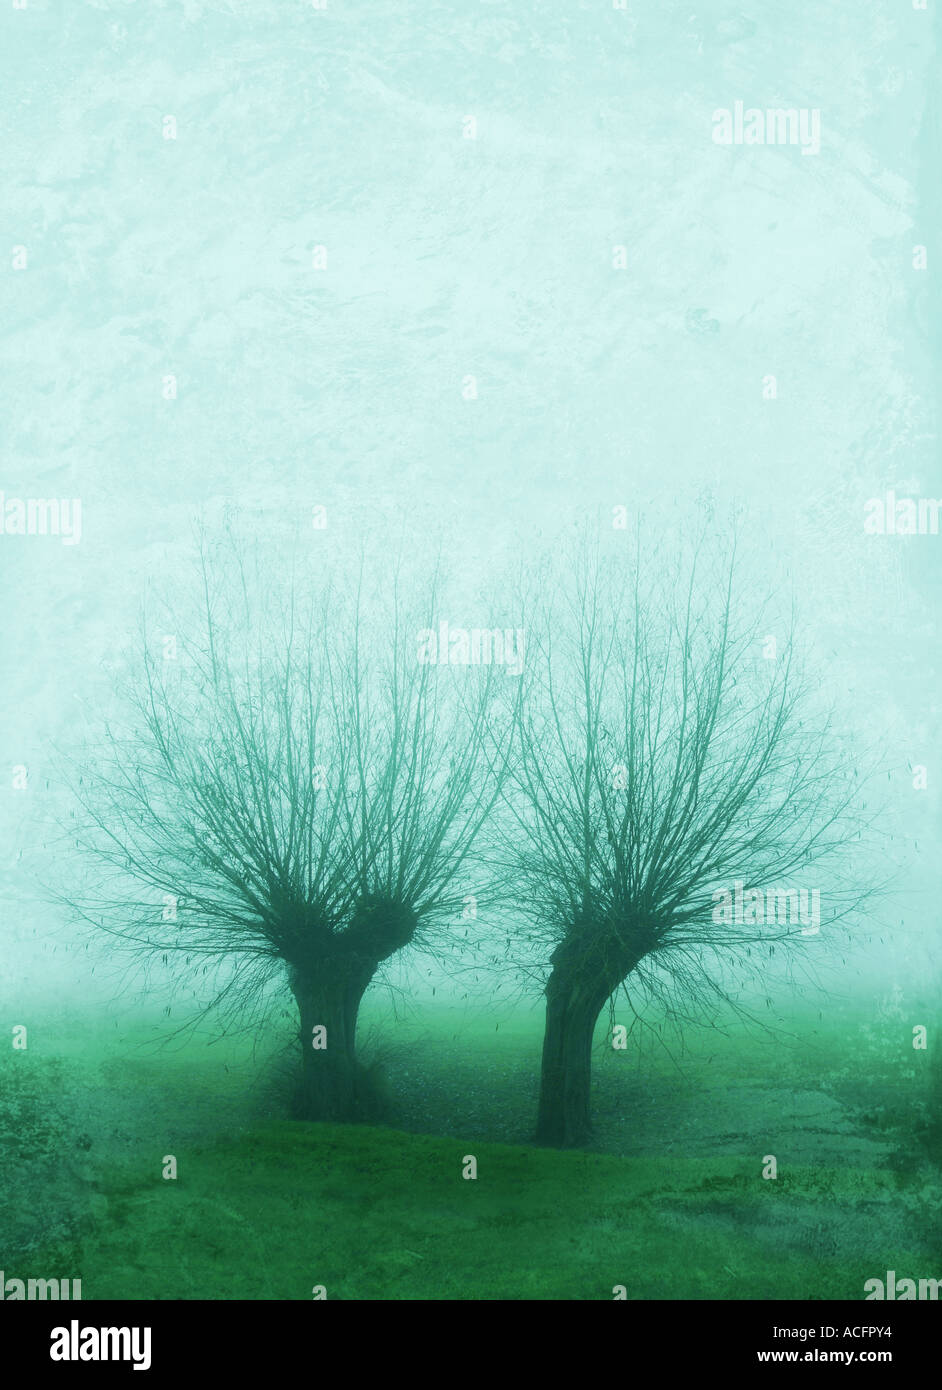 Photo of two willow trees in the mist - Stock Image